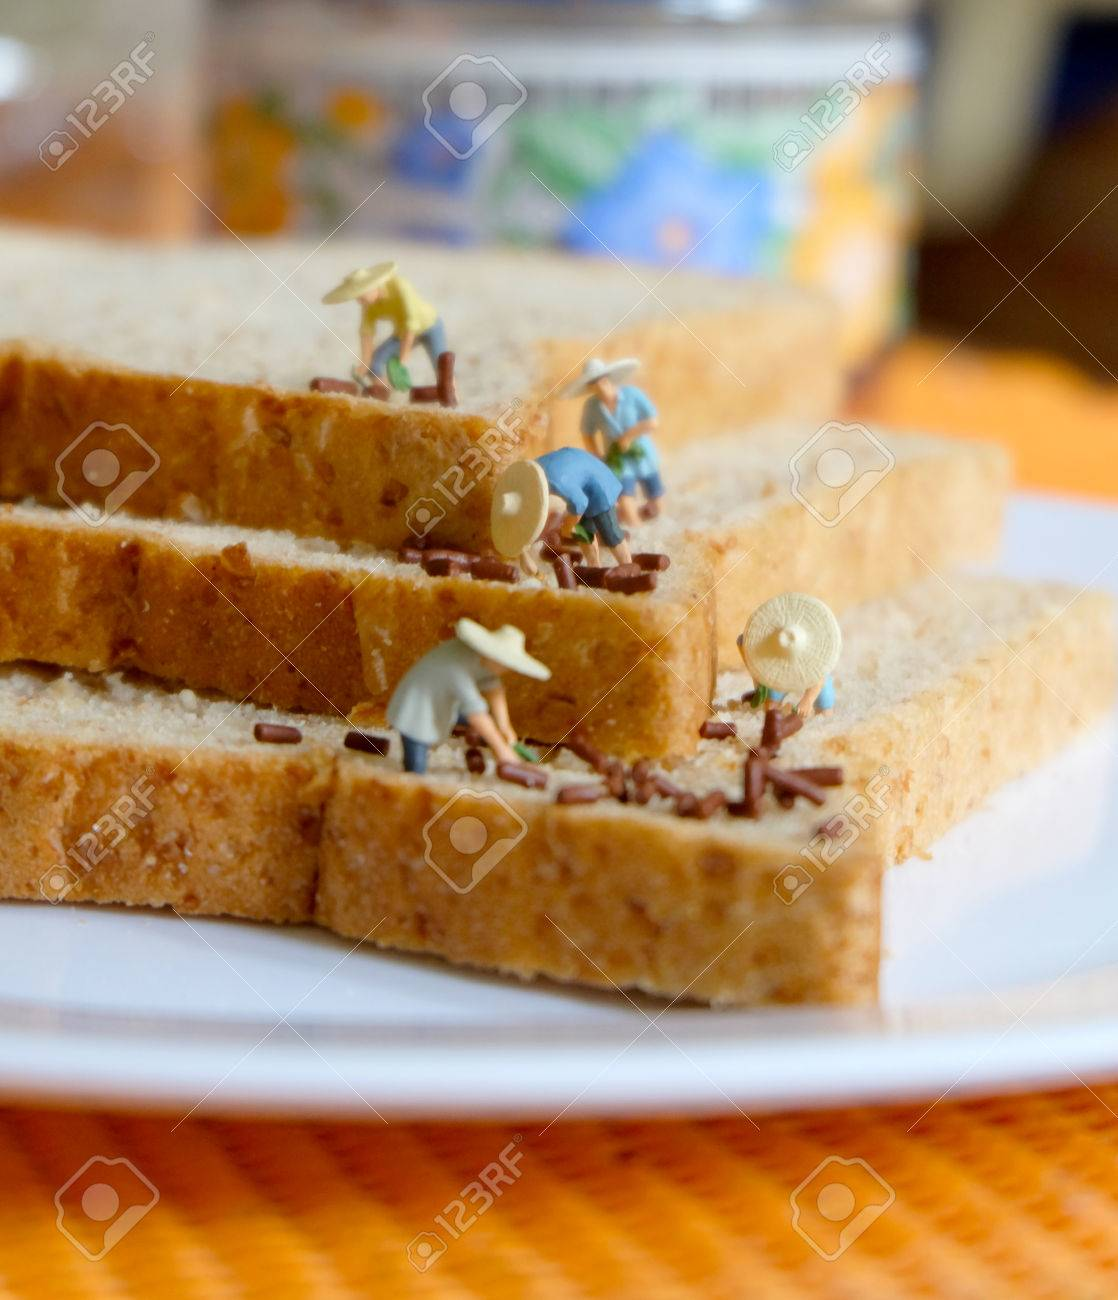 Miniature Farmer on Bread Stock Photo - 75137206